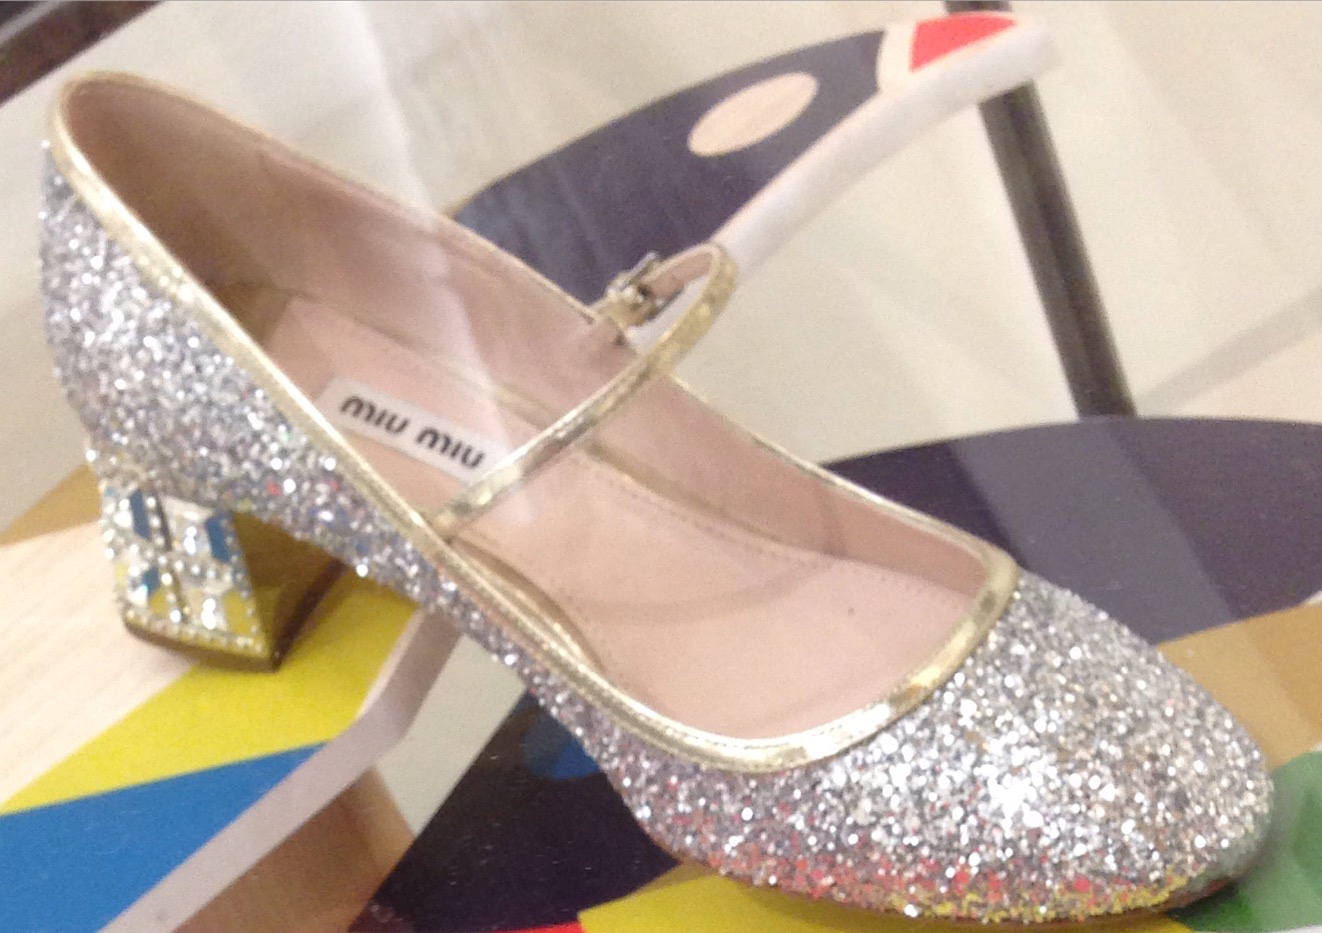 Miu Miu shoe detail at Nordstrom - Proof that something that sparkles can also be sensible.   - Photo credit Heather Phillips